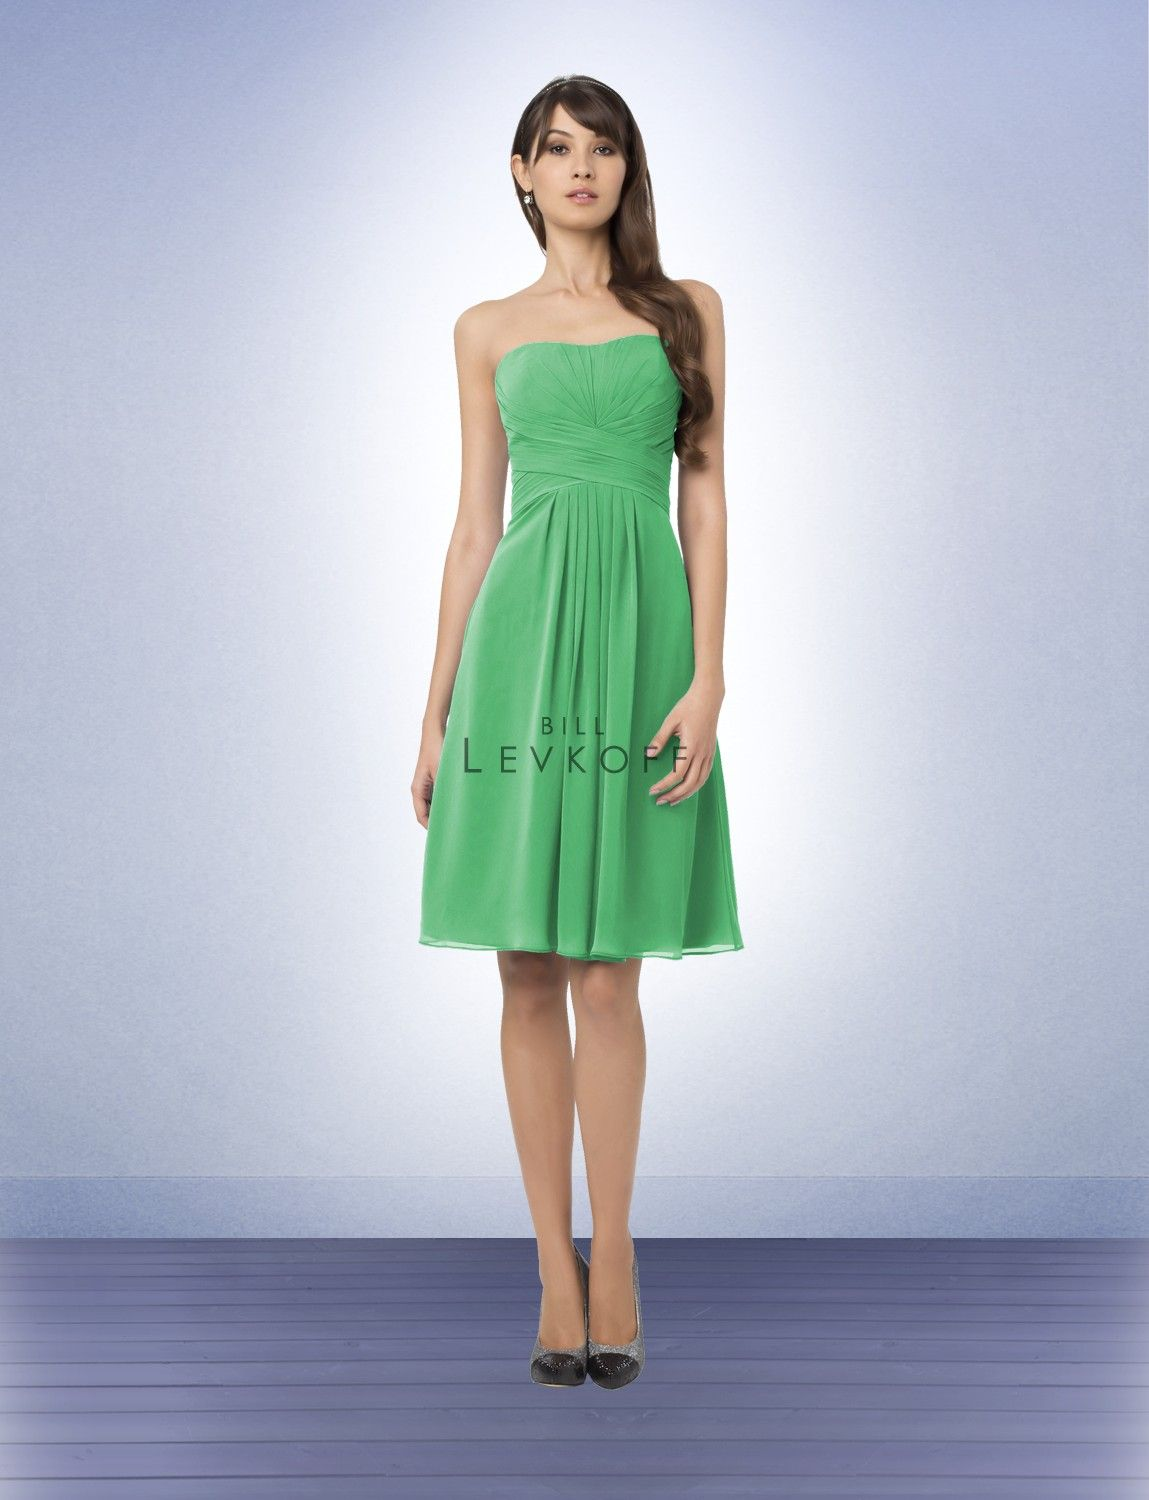 Bill Levkoff 765 Nancy S Bridal Super Kelly Green Chiffon Strapless Short Dress With Modified Sweetheart Neckline Pleats And Tucks Accent The Bodice